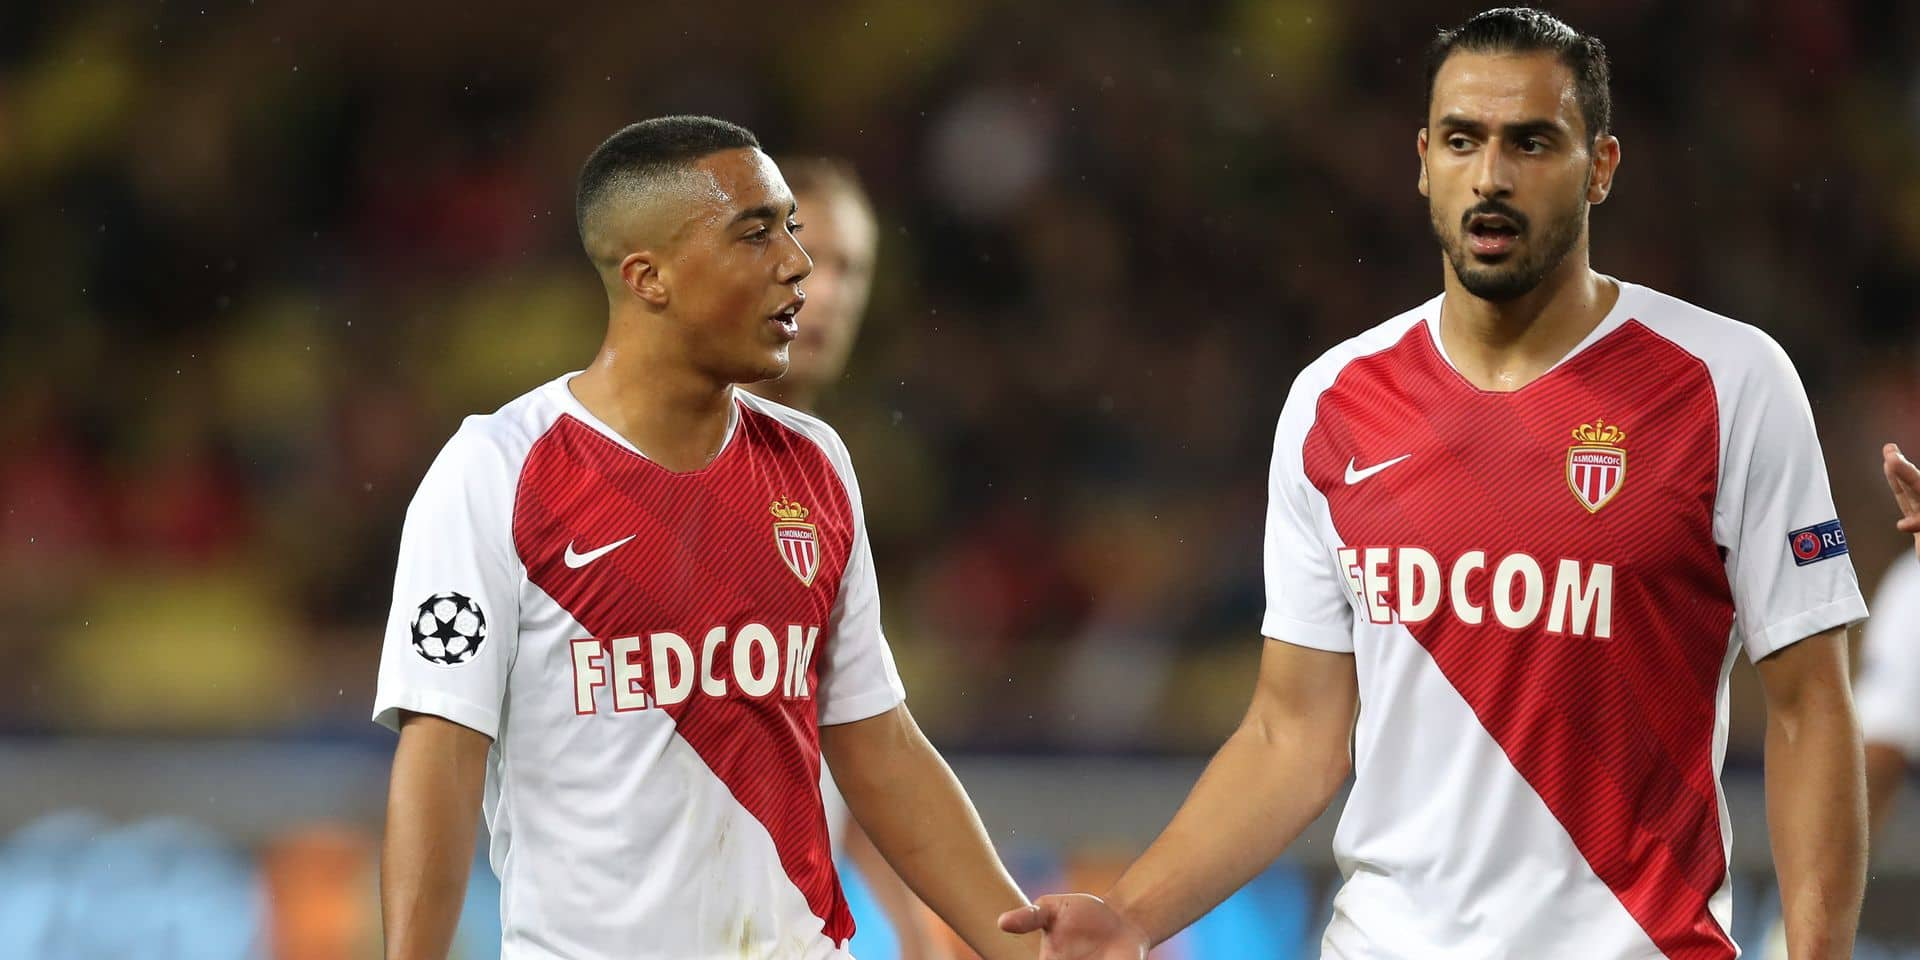 Monaco's Youri Tielemans and Monaco's Nacer Chadli pictured during a game between AS Monaco and Belgian soccer team Club Brugge KV in the Principality of Monaco, Tuesday 06 November 2018, on day four of the UEFA Champions League, in group A. BELGA PHOTO BRUNO FAHY